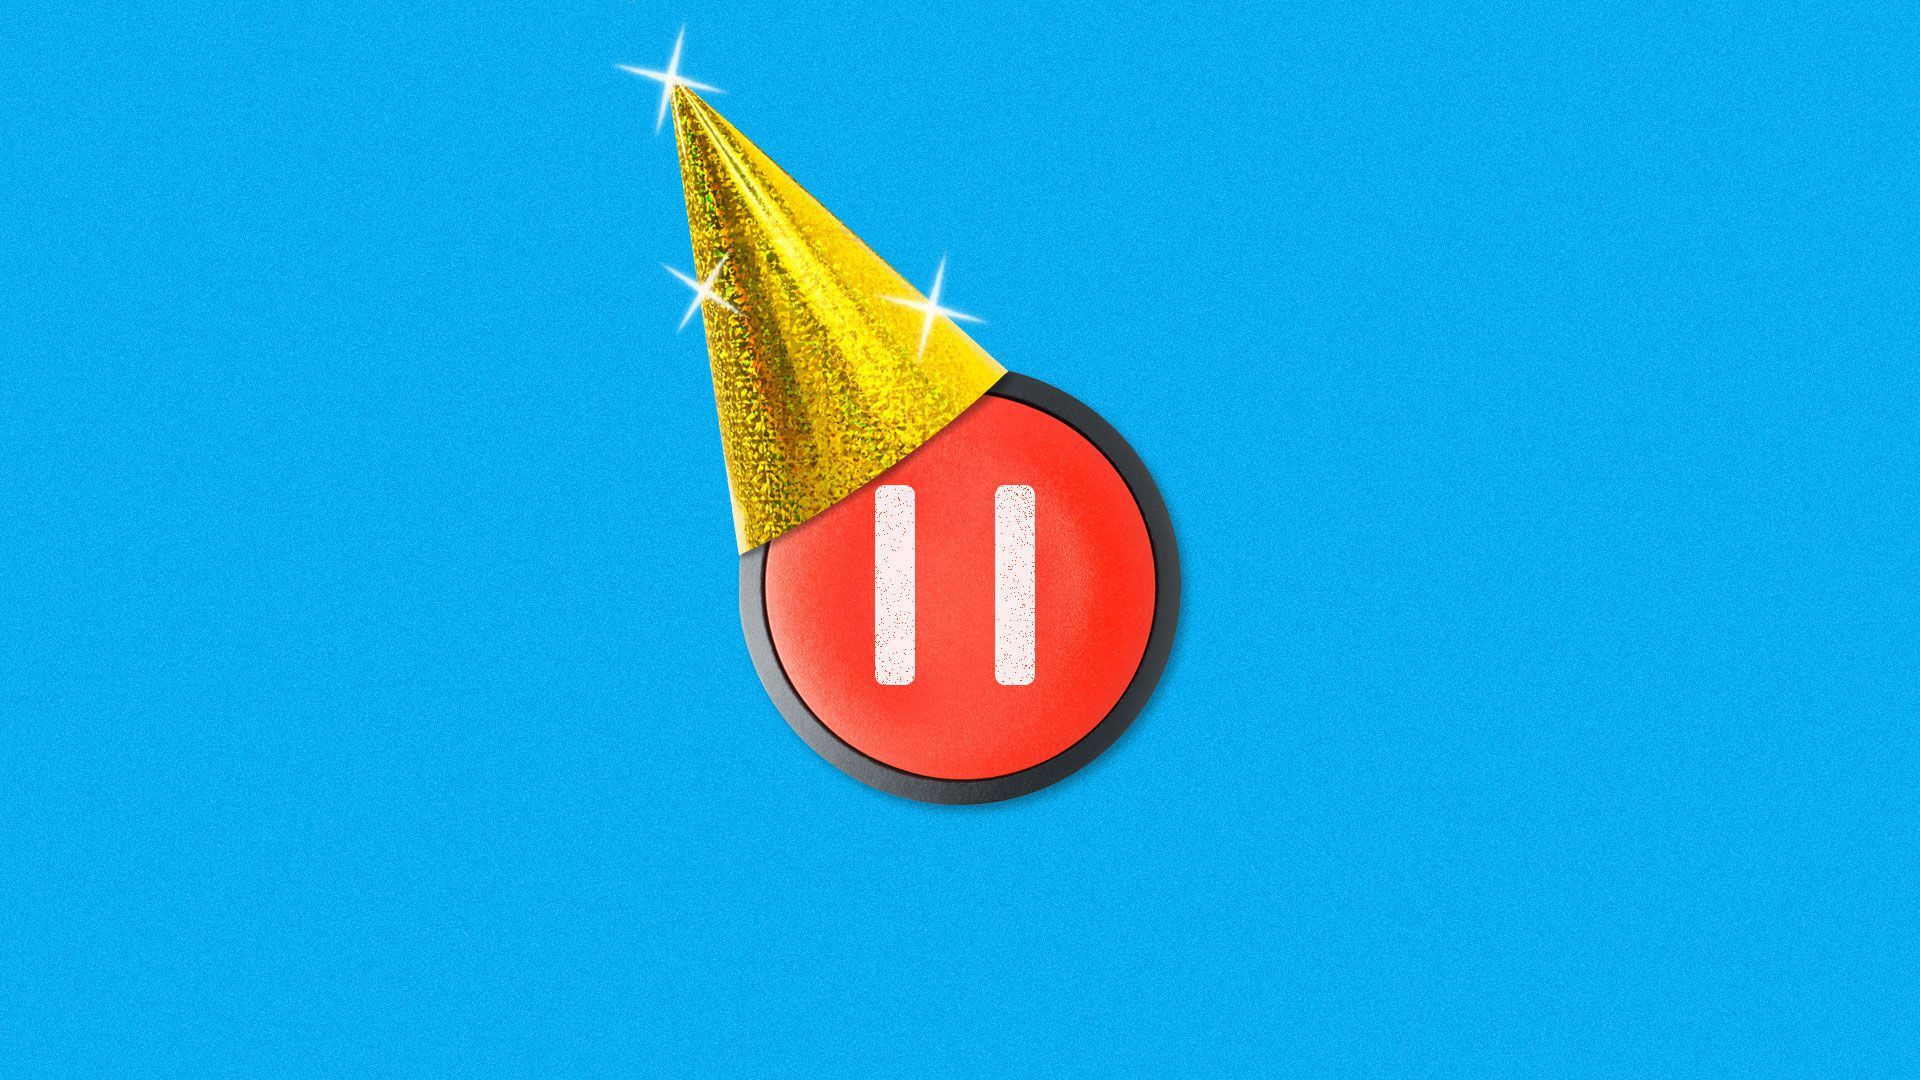 A pause button wearing a party hat.